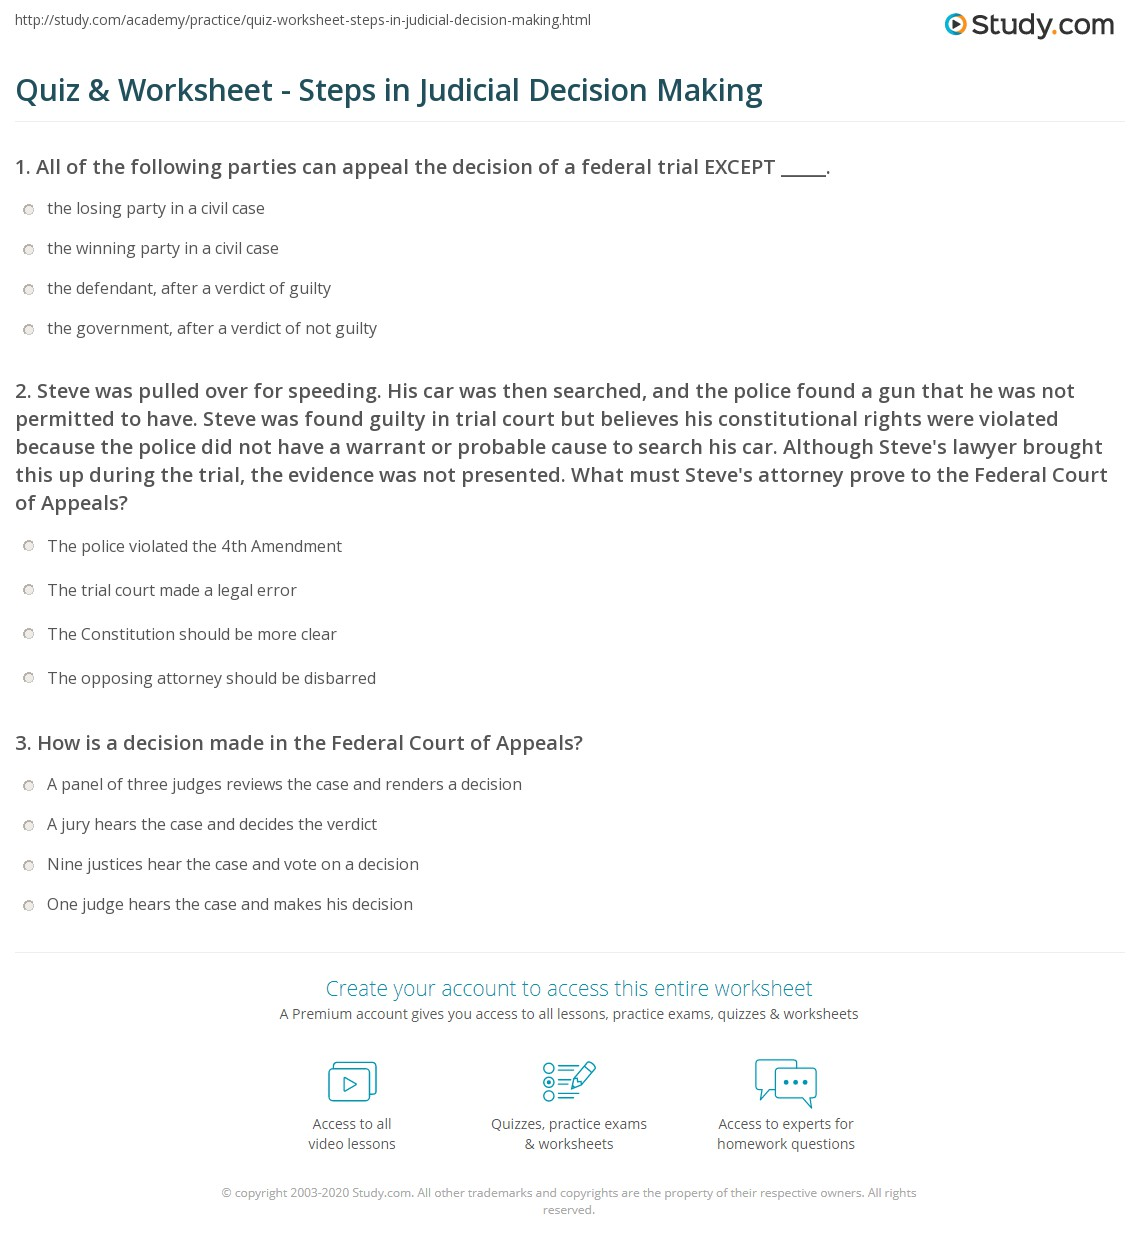 New Federal Court Decision Should Be >> Quiz Worksheet Steps In Judicial Decision Making Study Com